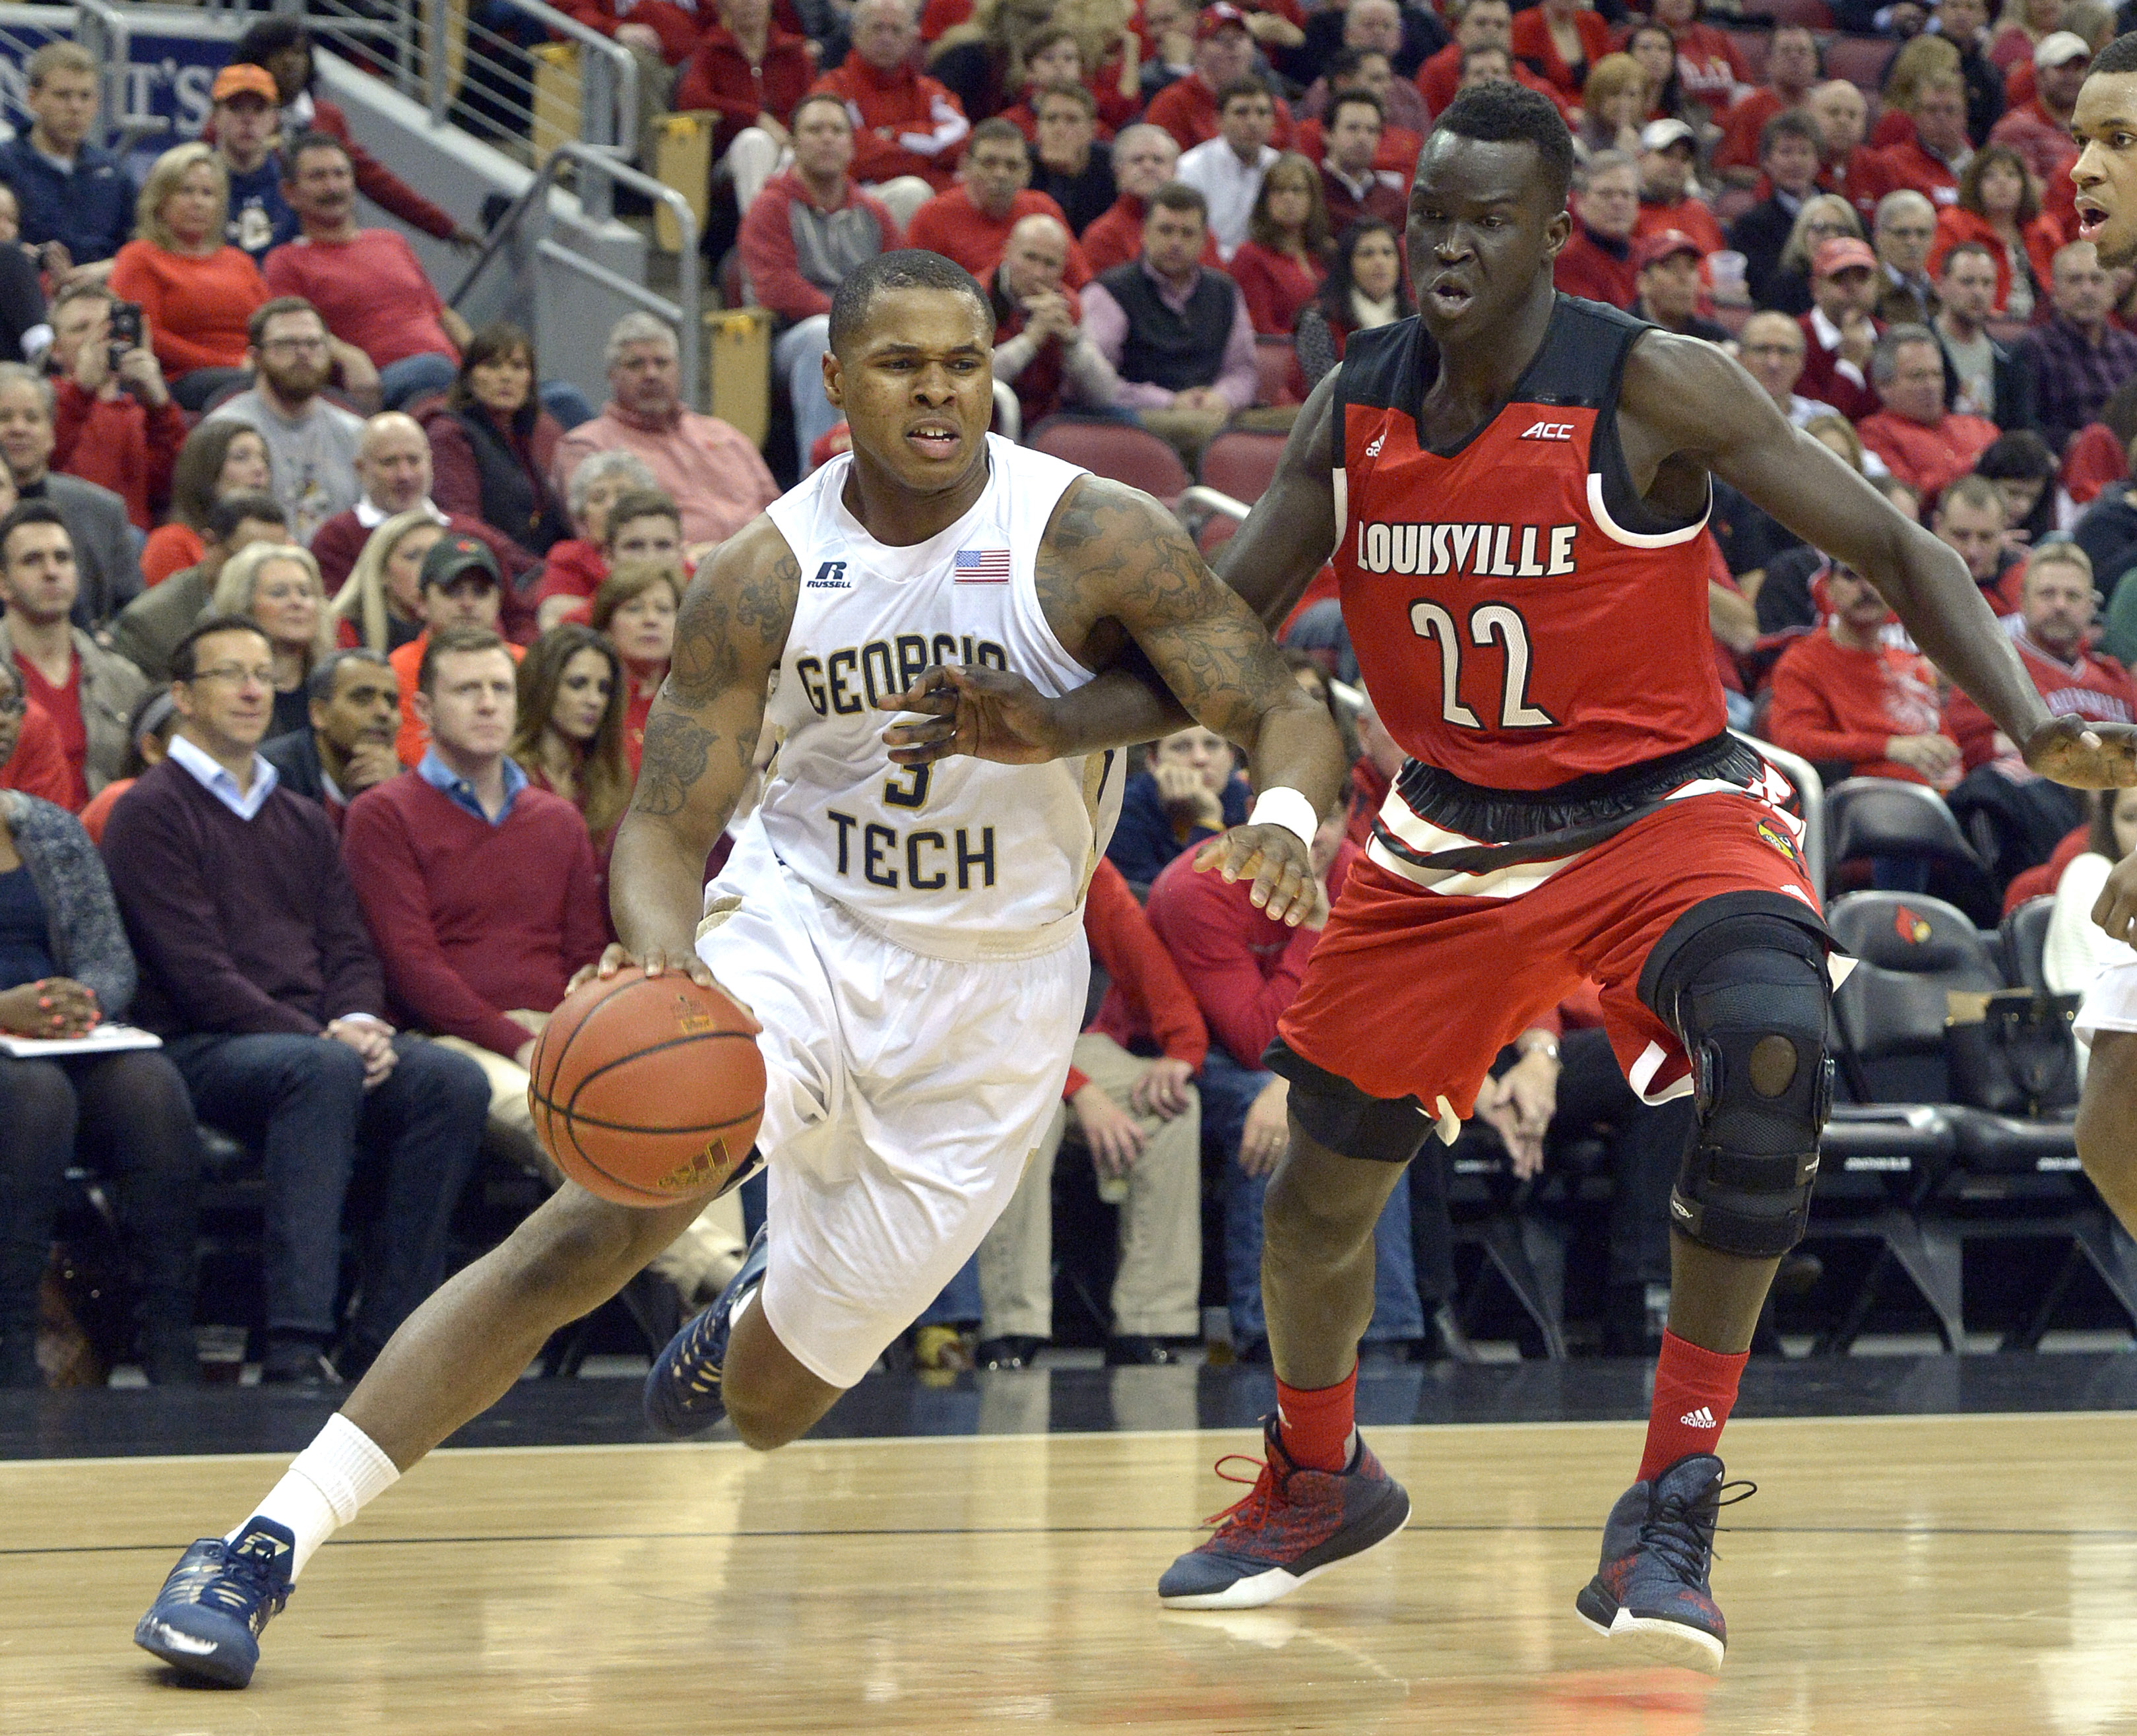 Georgia Tech's Marcus Georges-Hunt (3) attempts to drive around Louisville's Deng Adel (22) during the first half of an NCAA college basketball game, Tuesday, March 1, 2016 in Louisville Ky. (AP Photo/Timothy D. Easley)